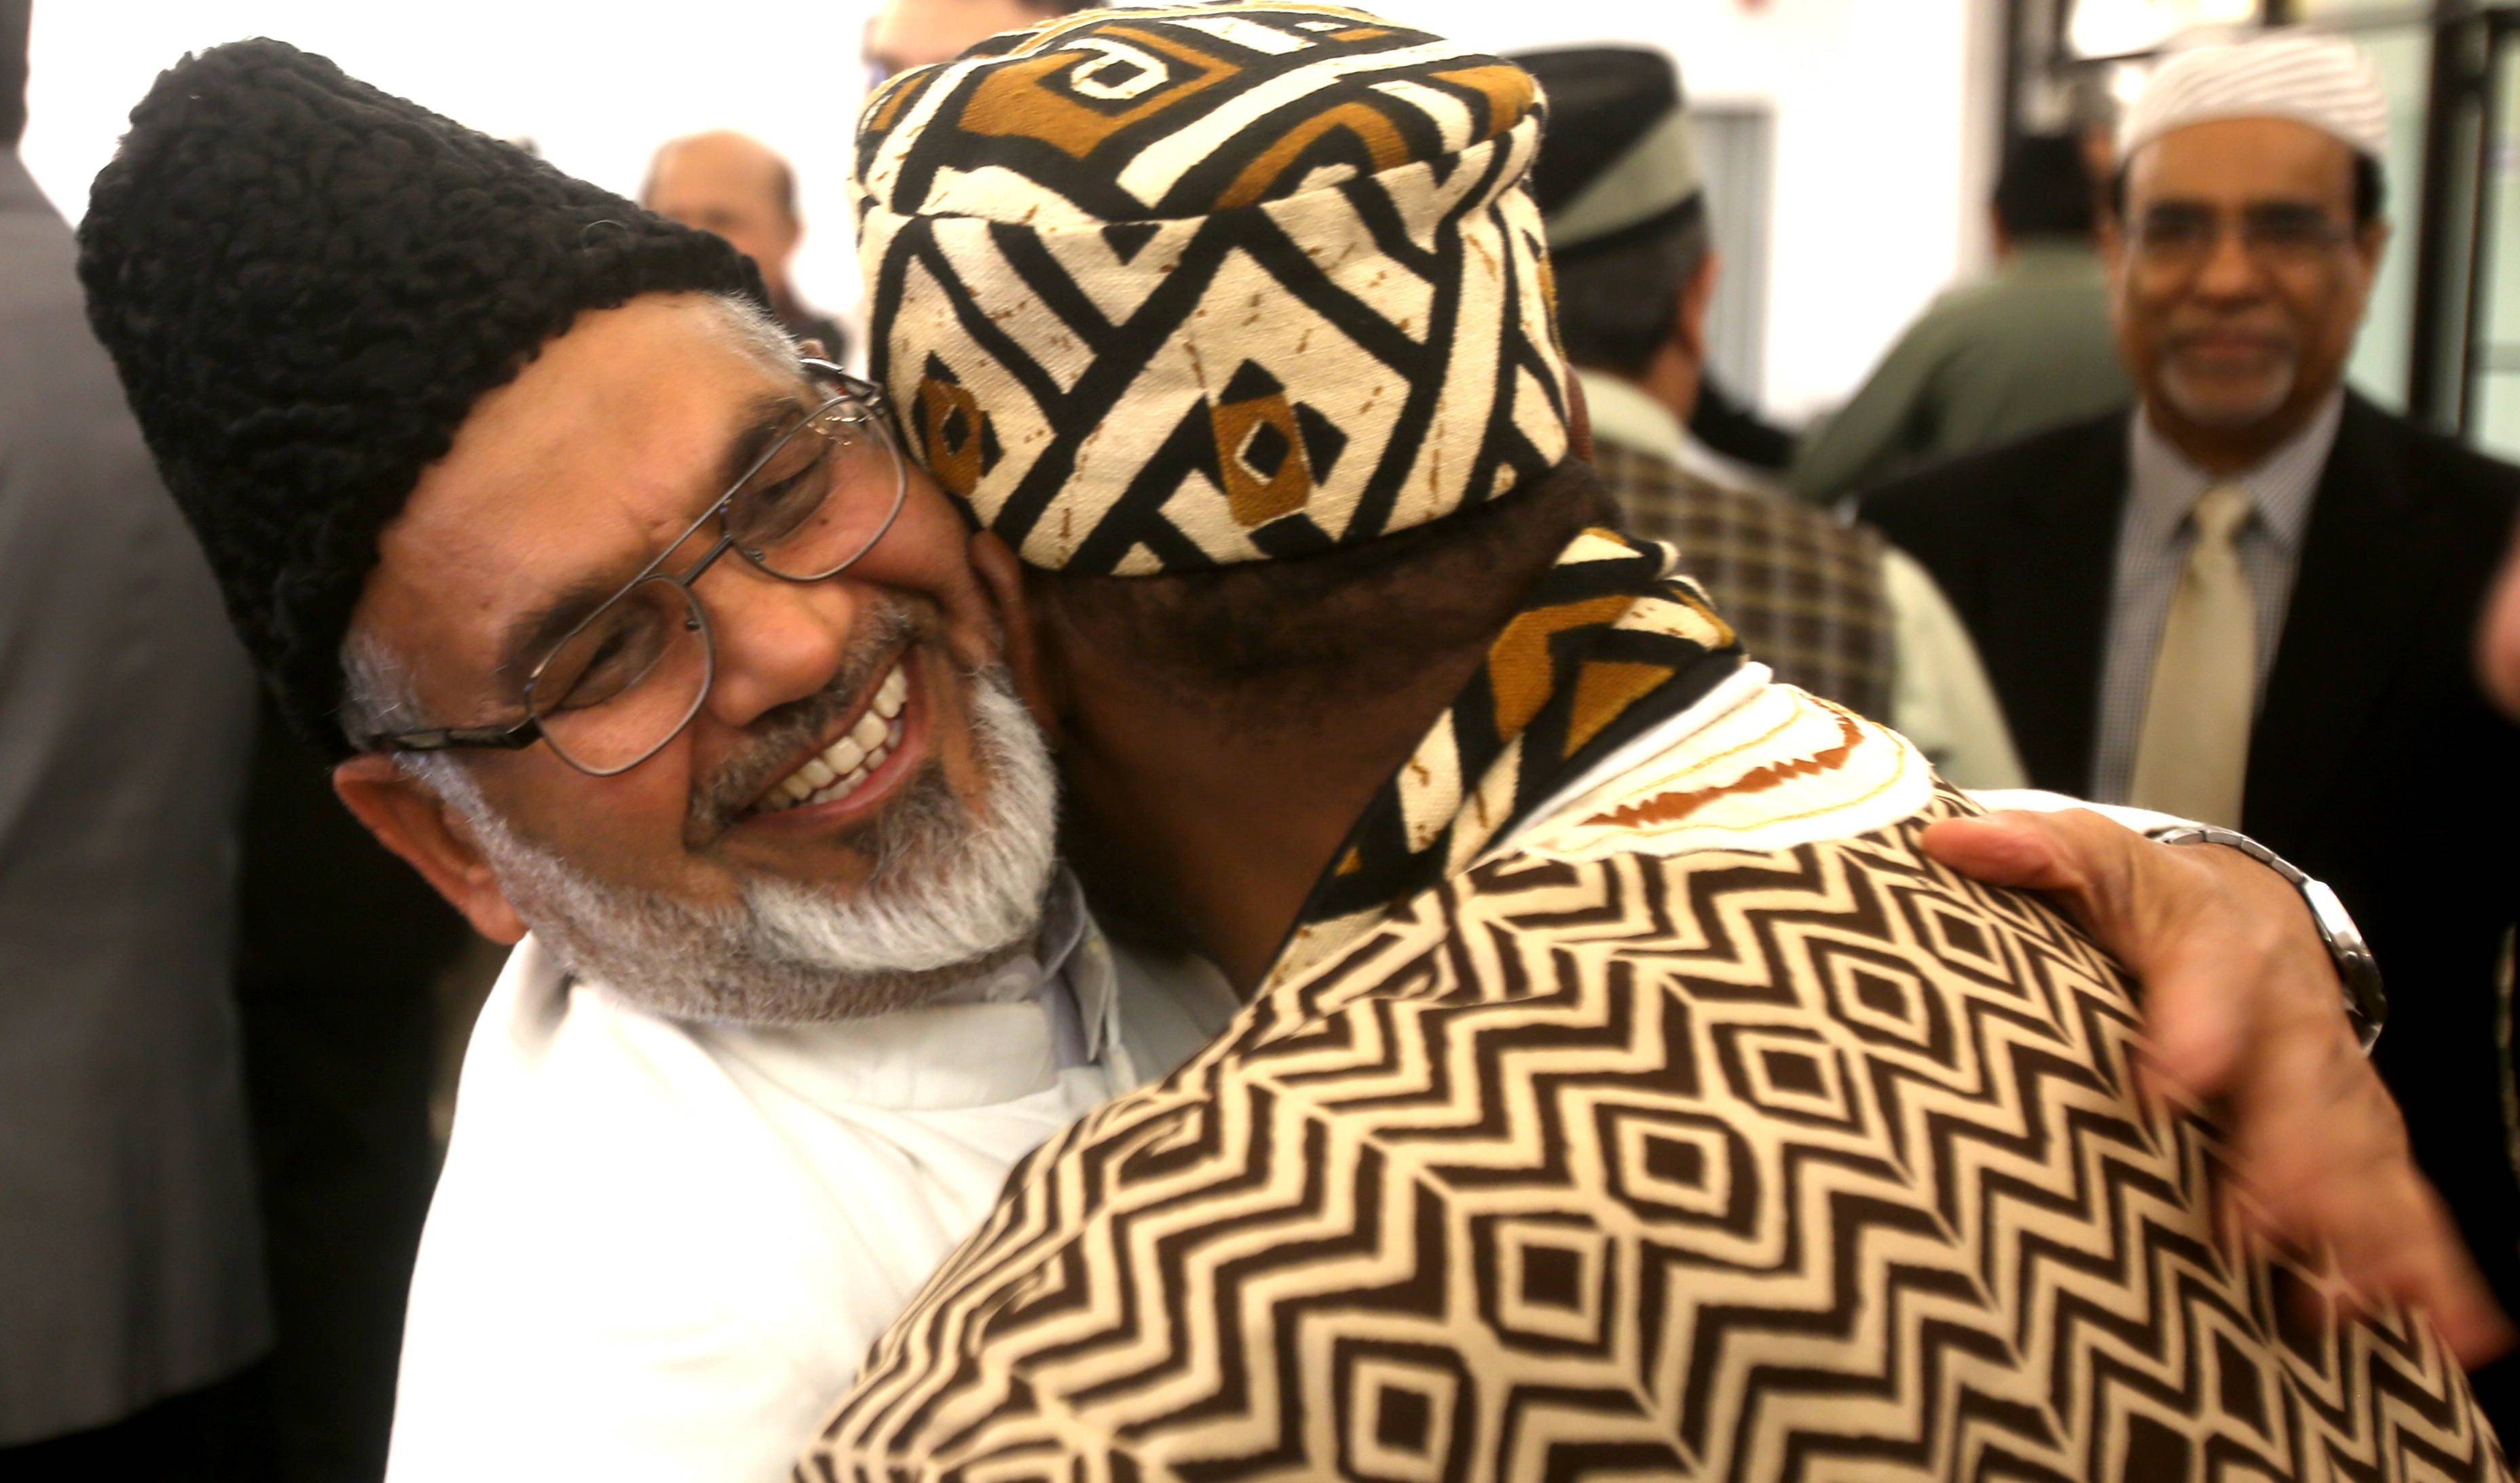 Muslims celebrate Eid al-Fitr at Glen Ellyn mosque